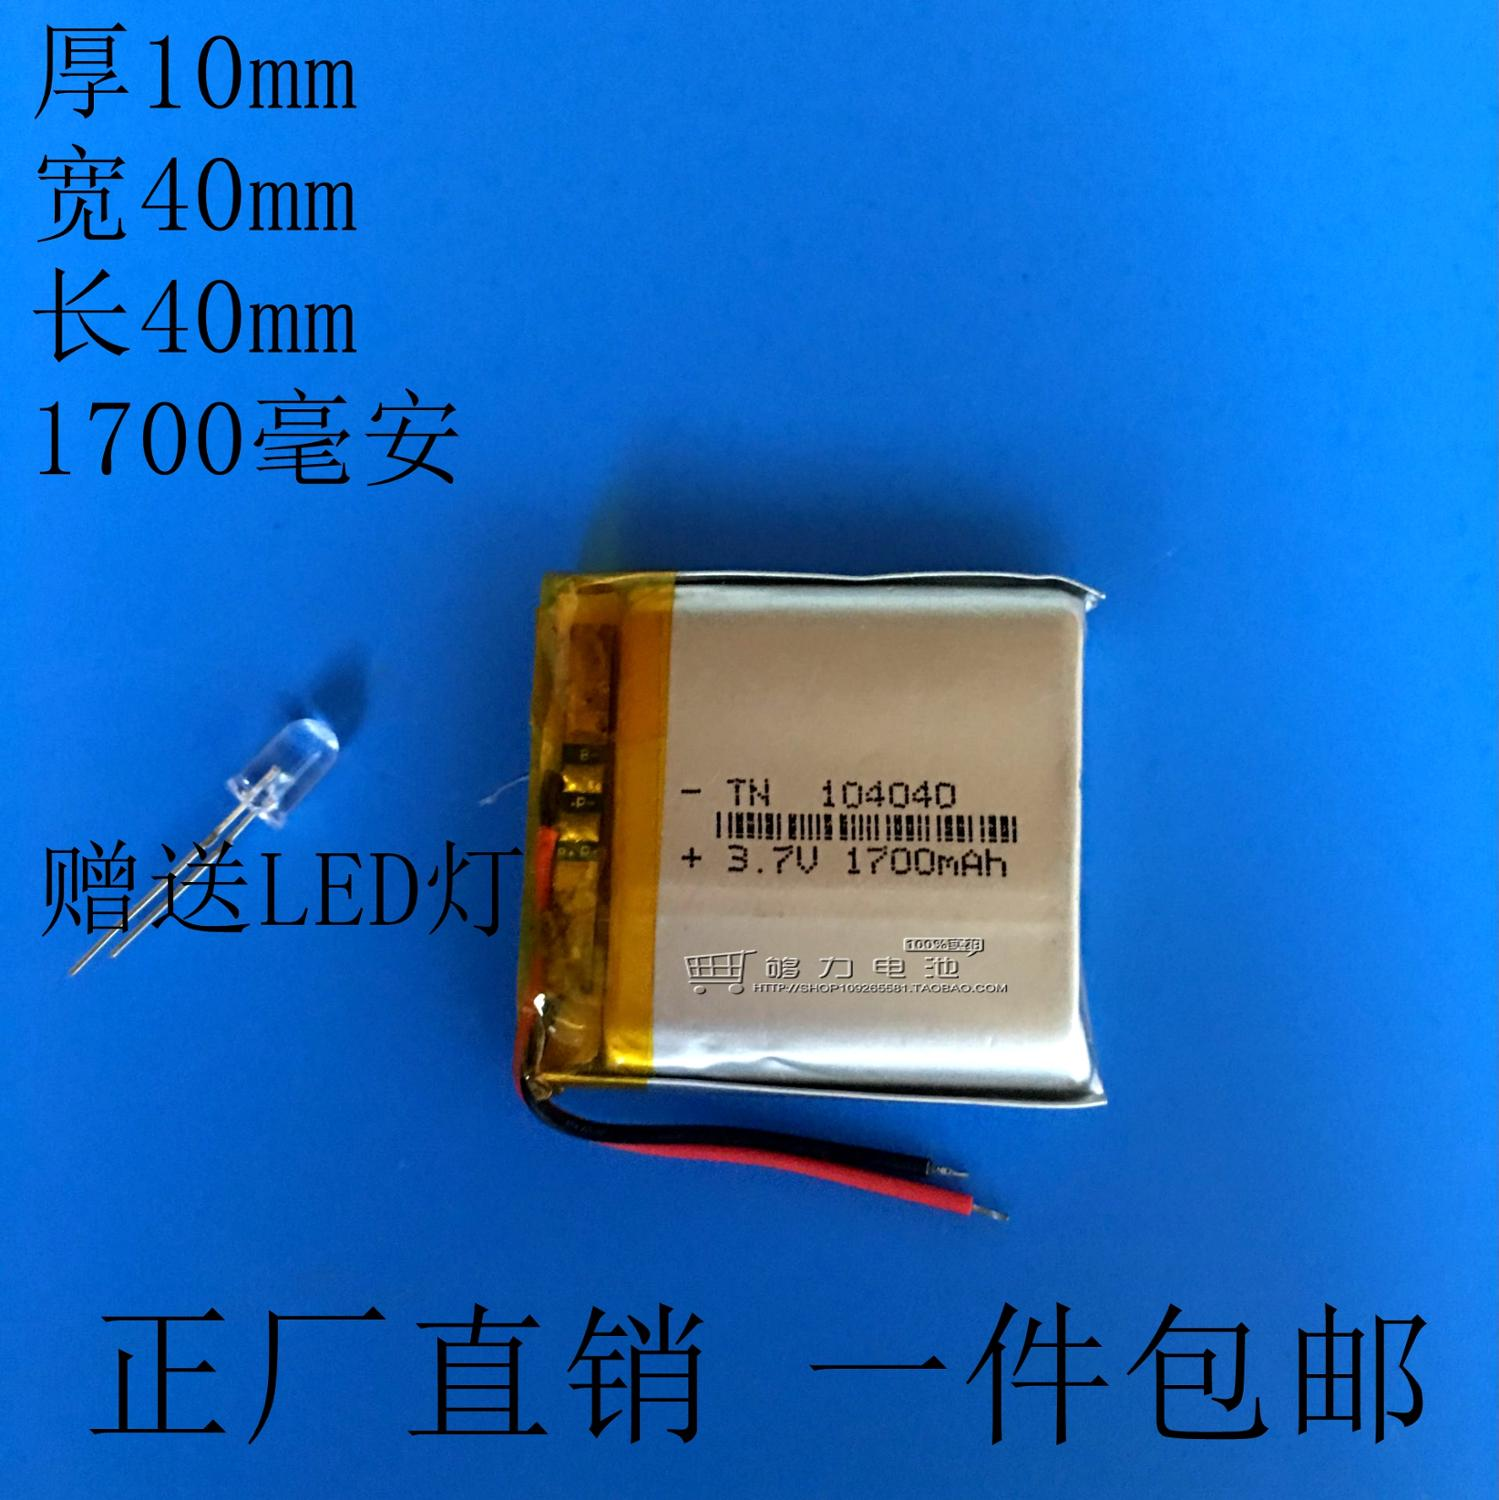 3.7V polymer lithium battery, 104040 1700mAh plug-in sound box, PSP navigator, learning machine mail Rechargeable Li-ion Cell